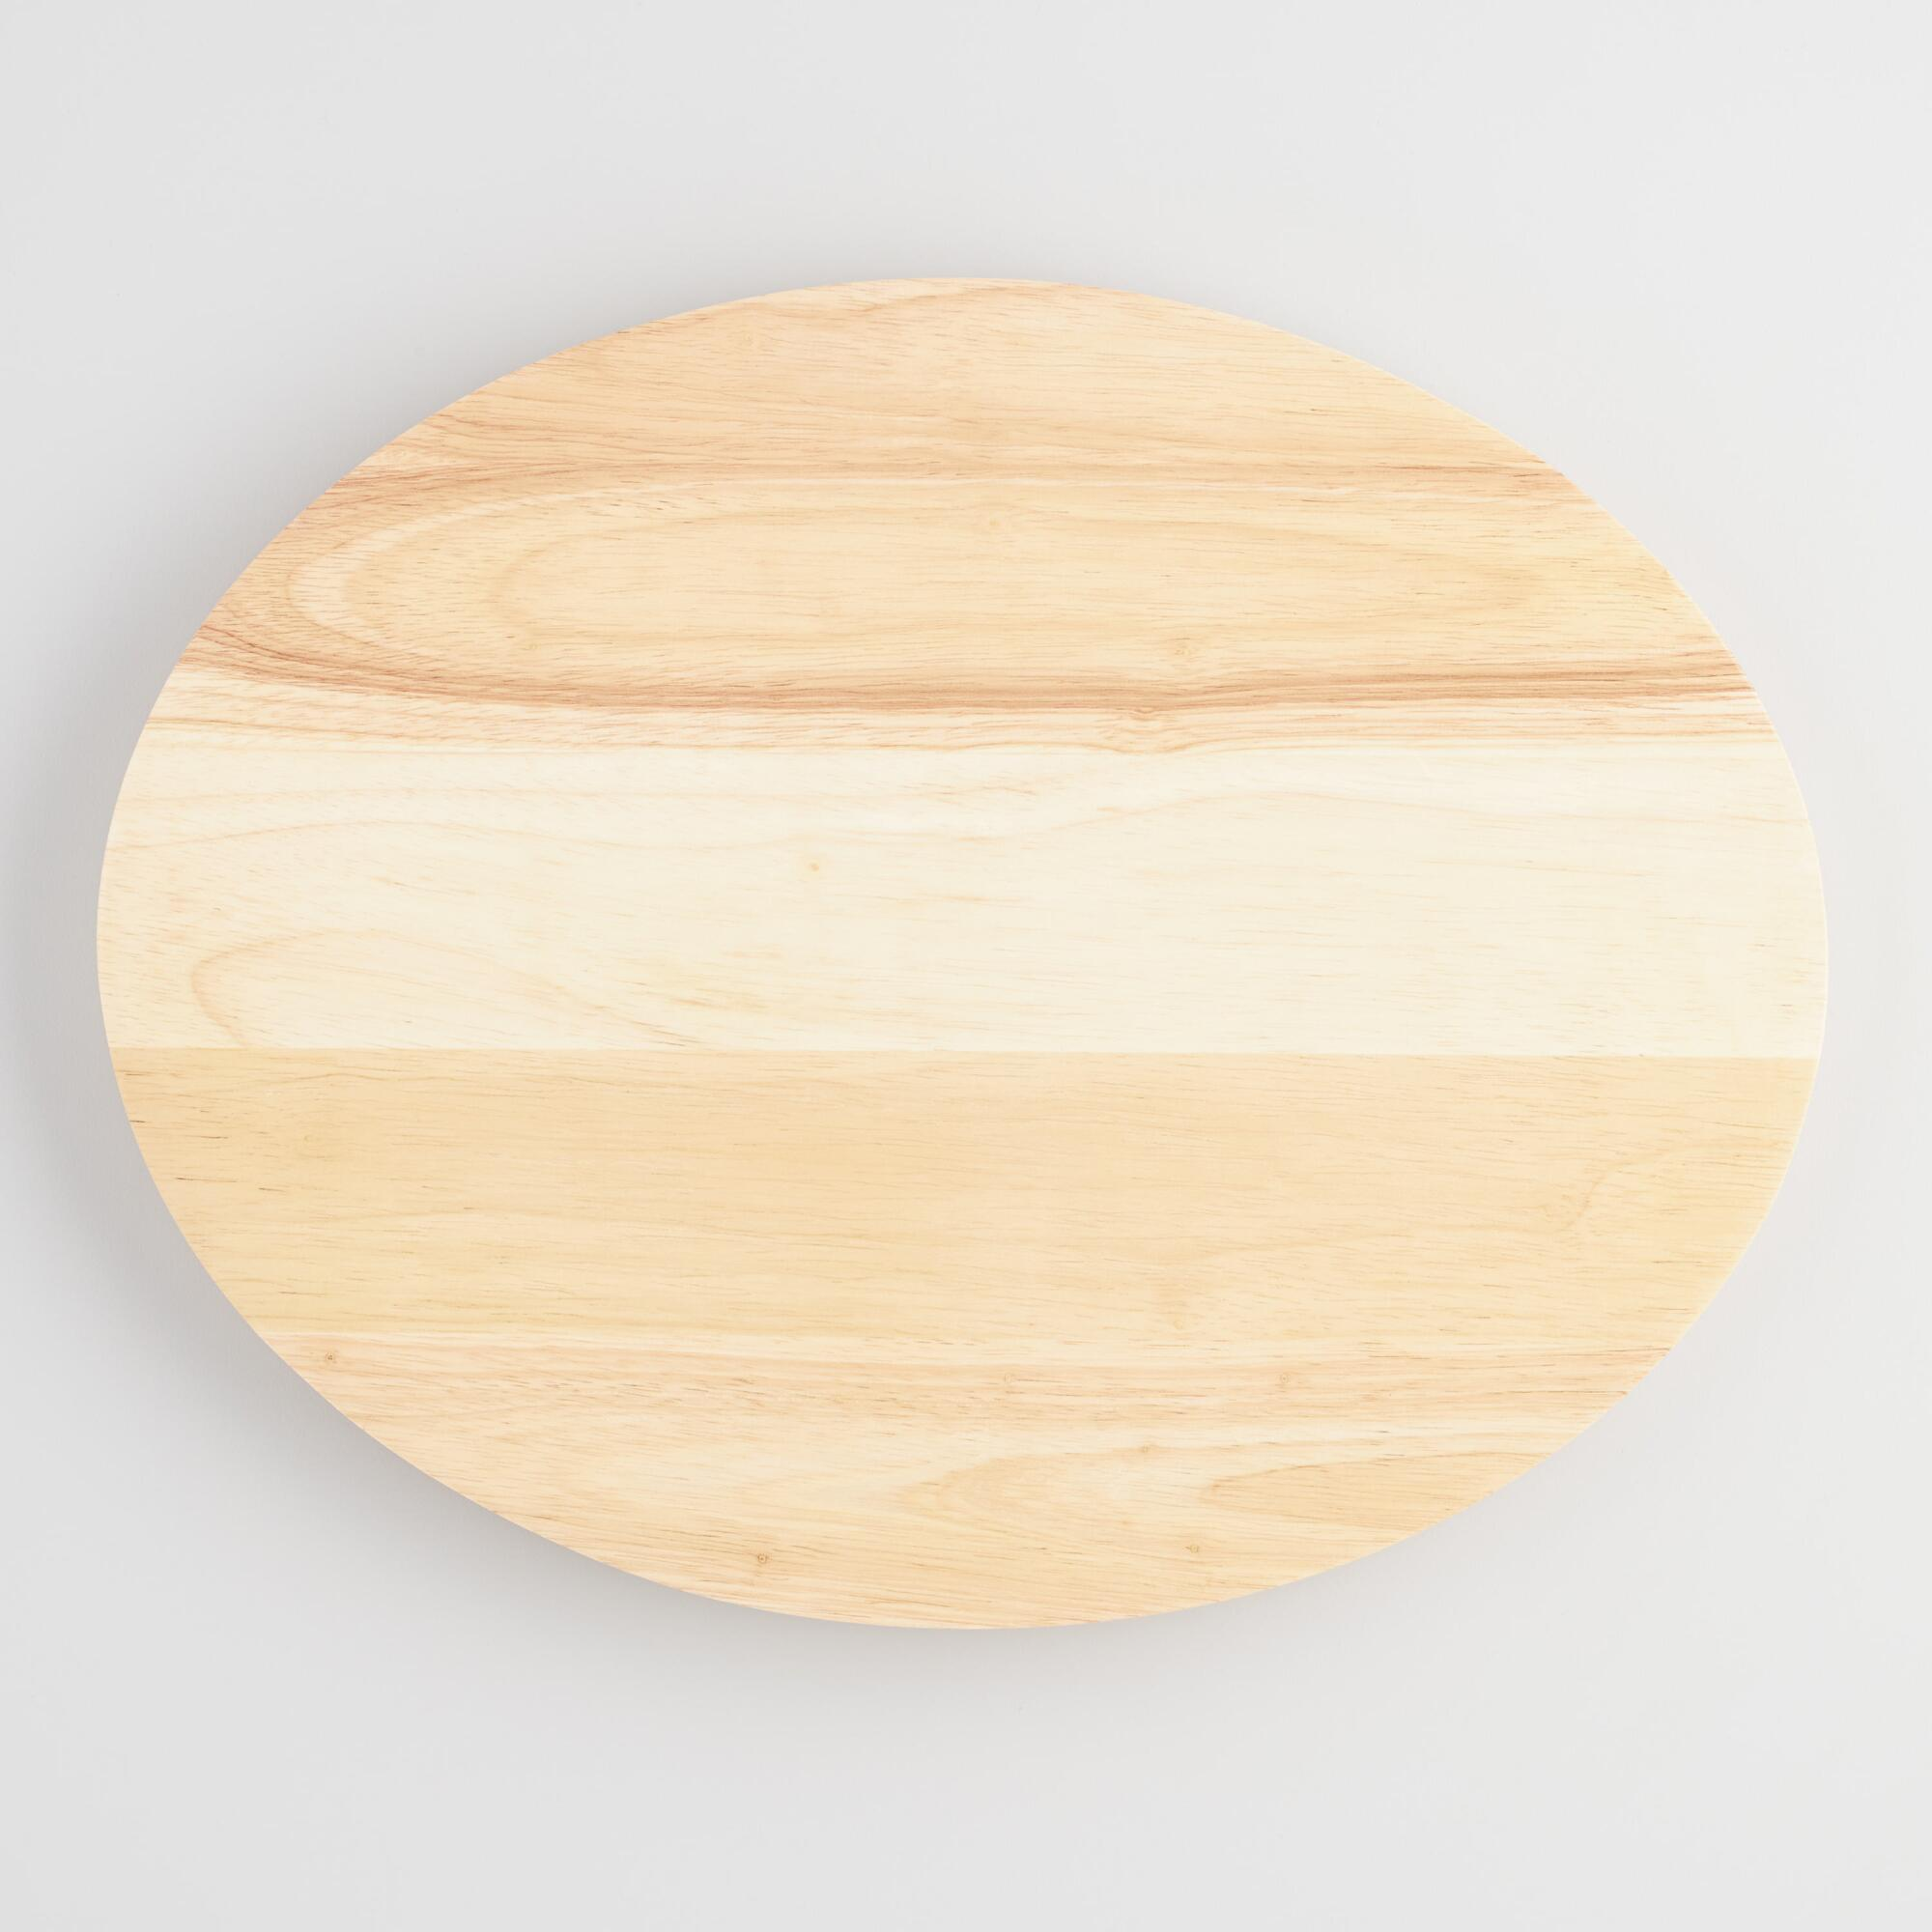 Oval Wood Concave Cutting Board by World Market